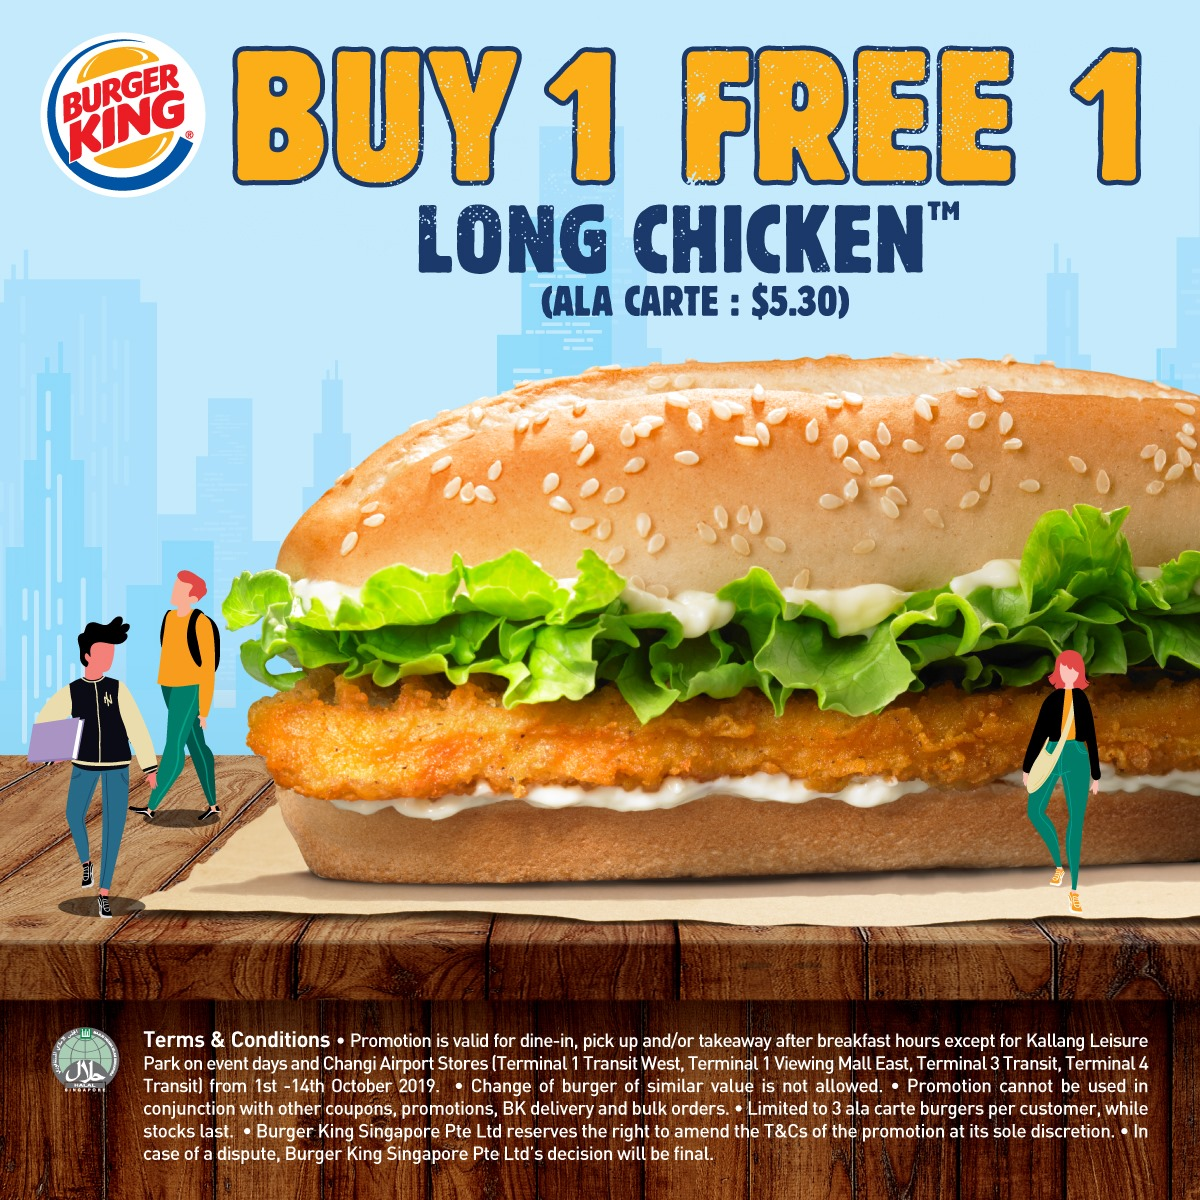 Burger King Singapore Buy 1 FREE 1 Long Chicken Promotion 1-14 Oct 2019 | Why Not Deals & Promotions